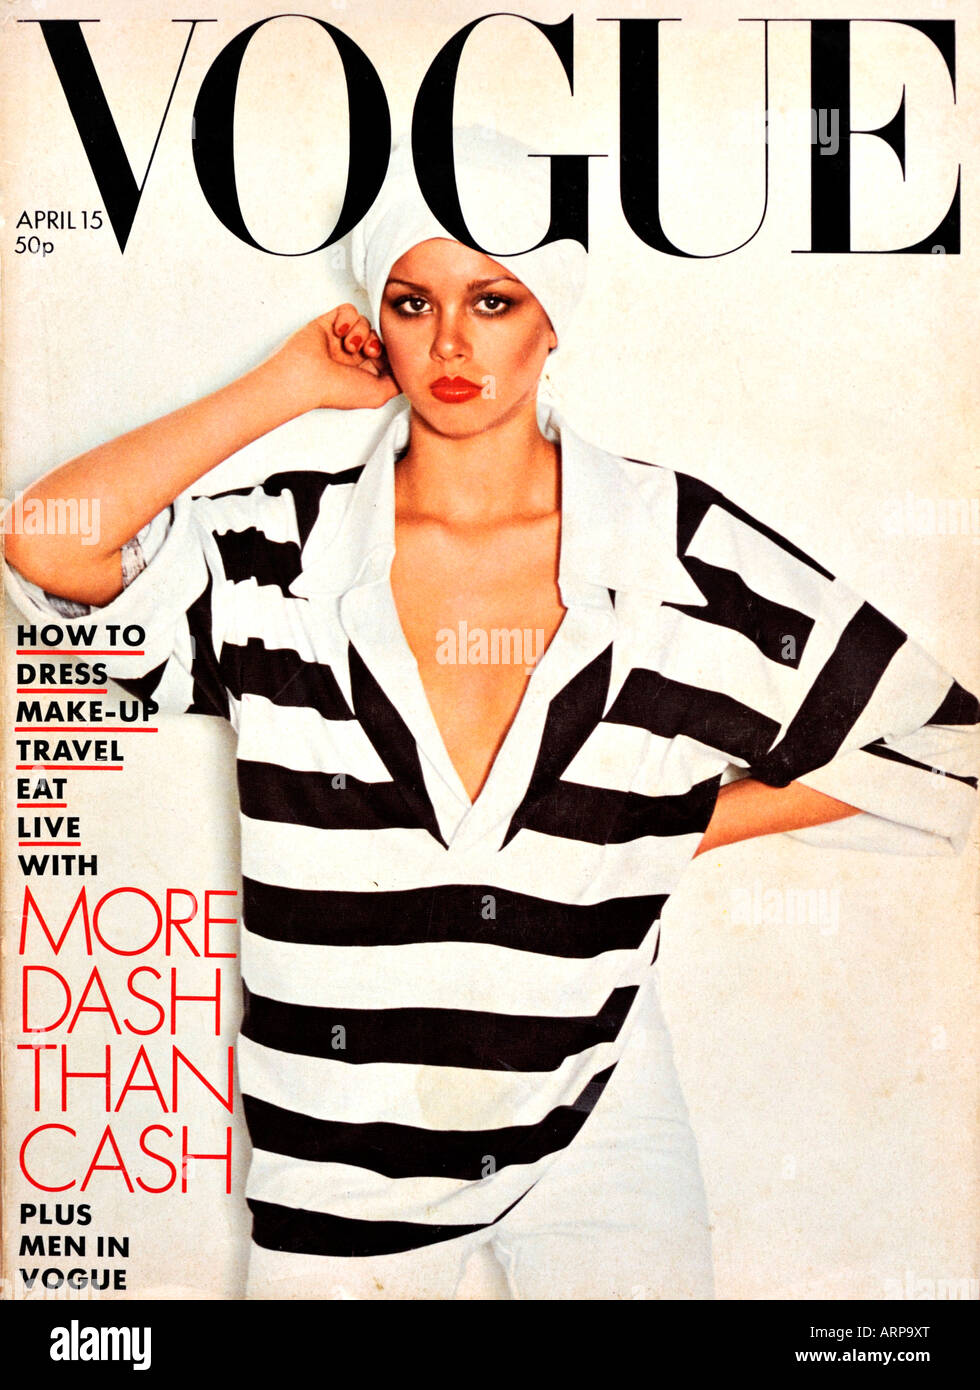 1970 Vogue Fashion Magazine 15 avril 1976 pour un usage éditorial uniquement Photo Stock